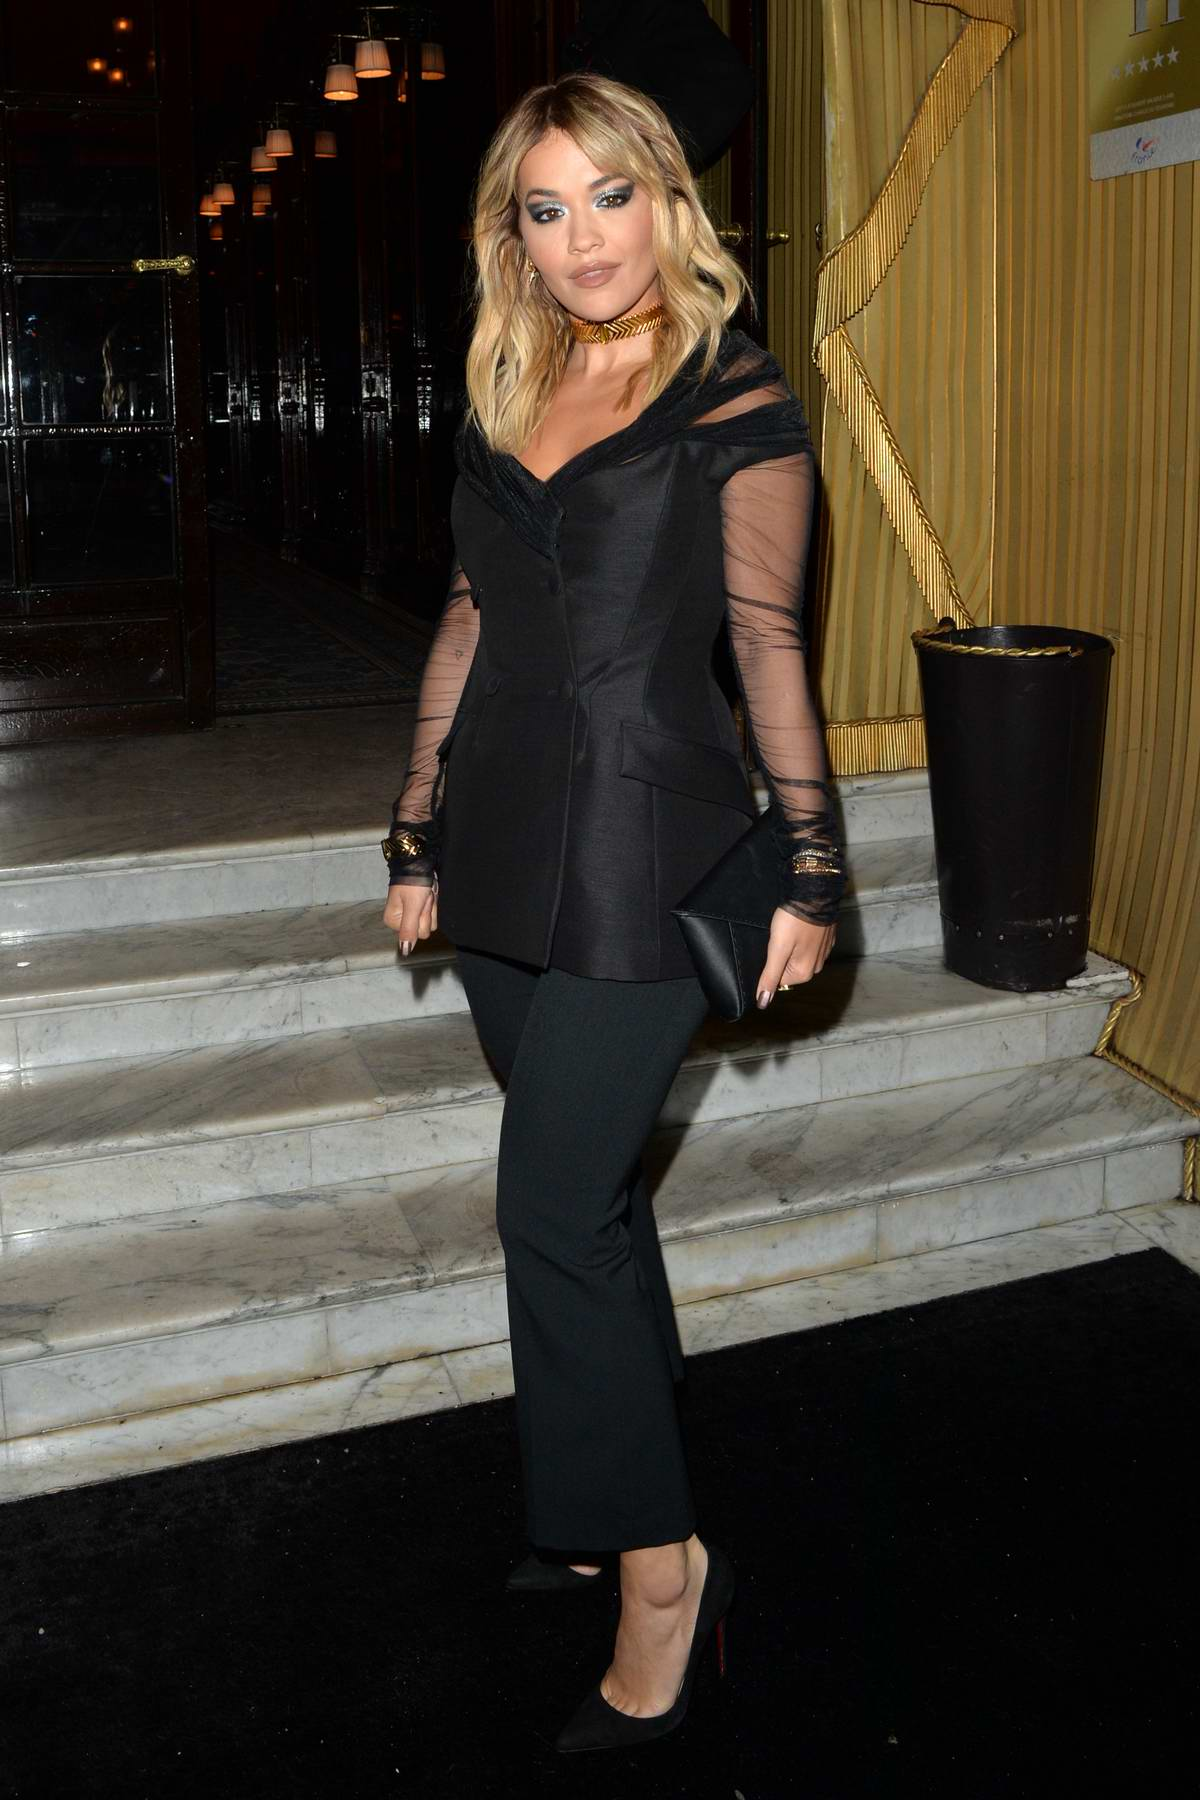 Rita Ora looks great in all-black as she steps out for dinner in Paris, France